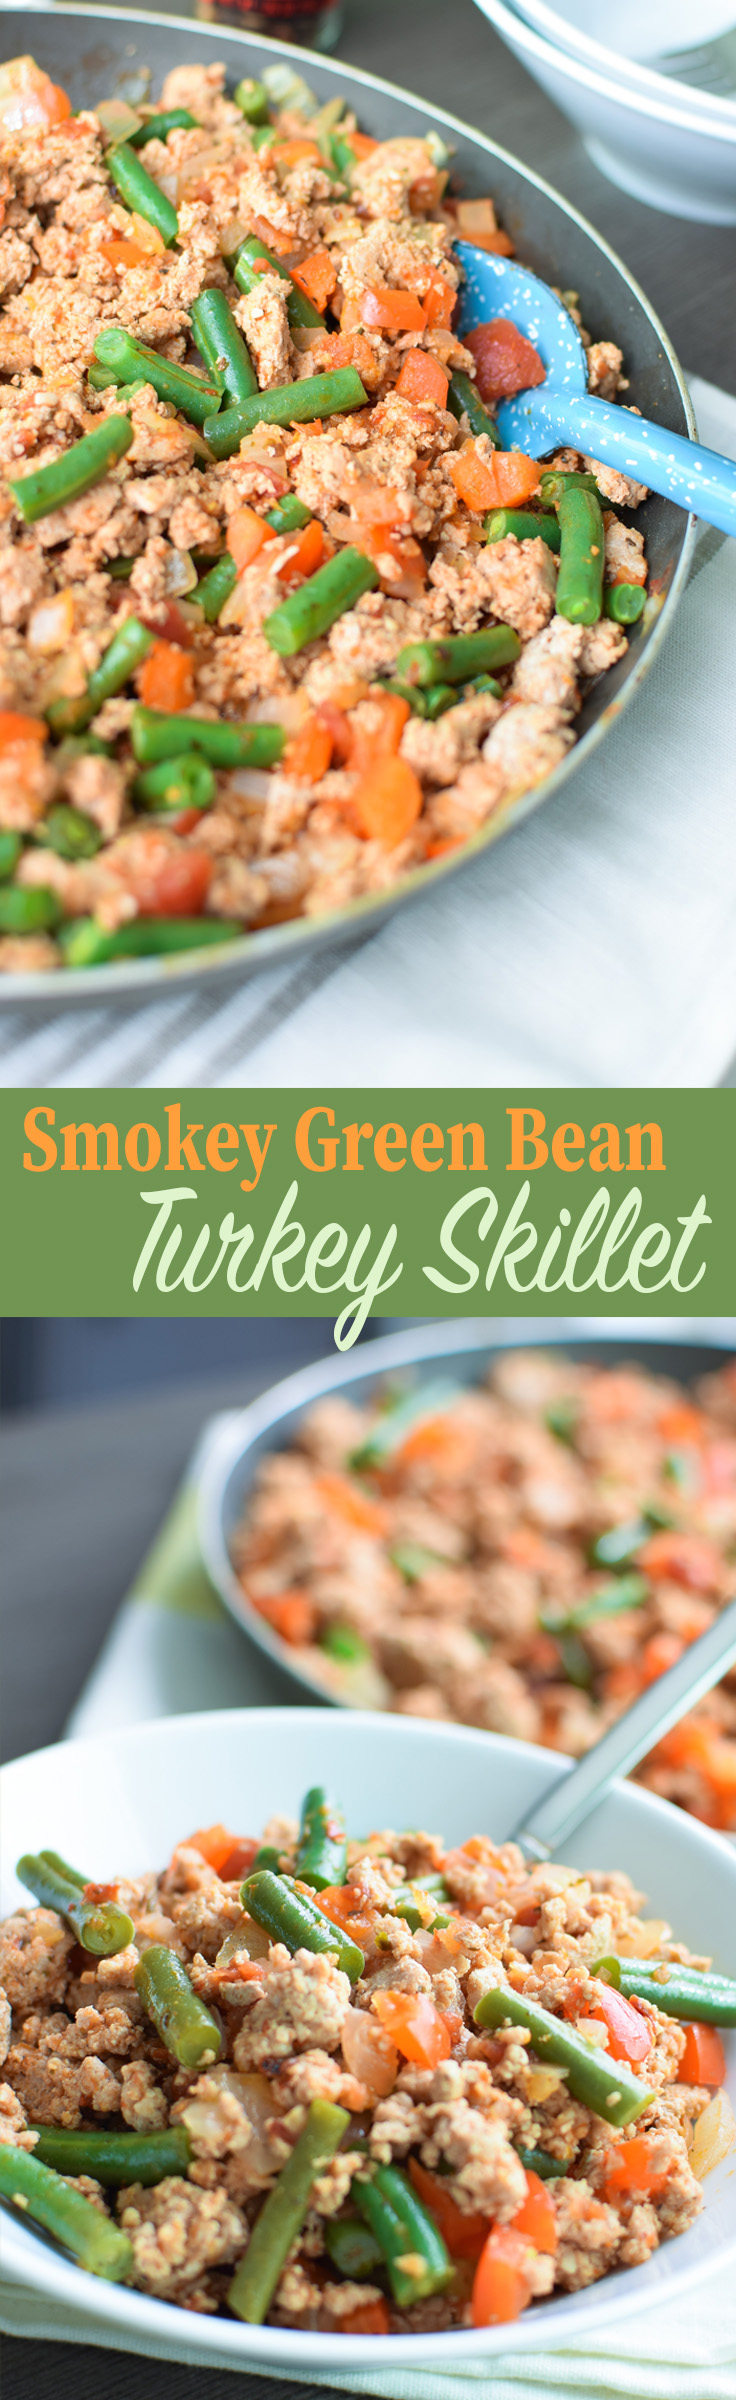 Smokey Green Bean Turkey Skillet recipe - Great for meal prep, dinner, lunch - serve over rice or quinoa! - Projectmealplan.com